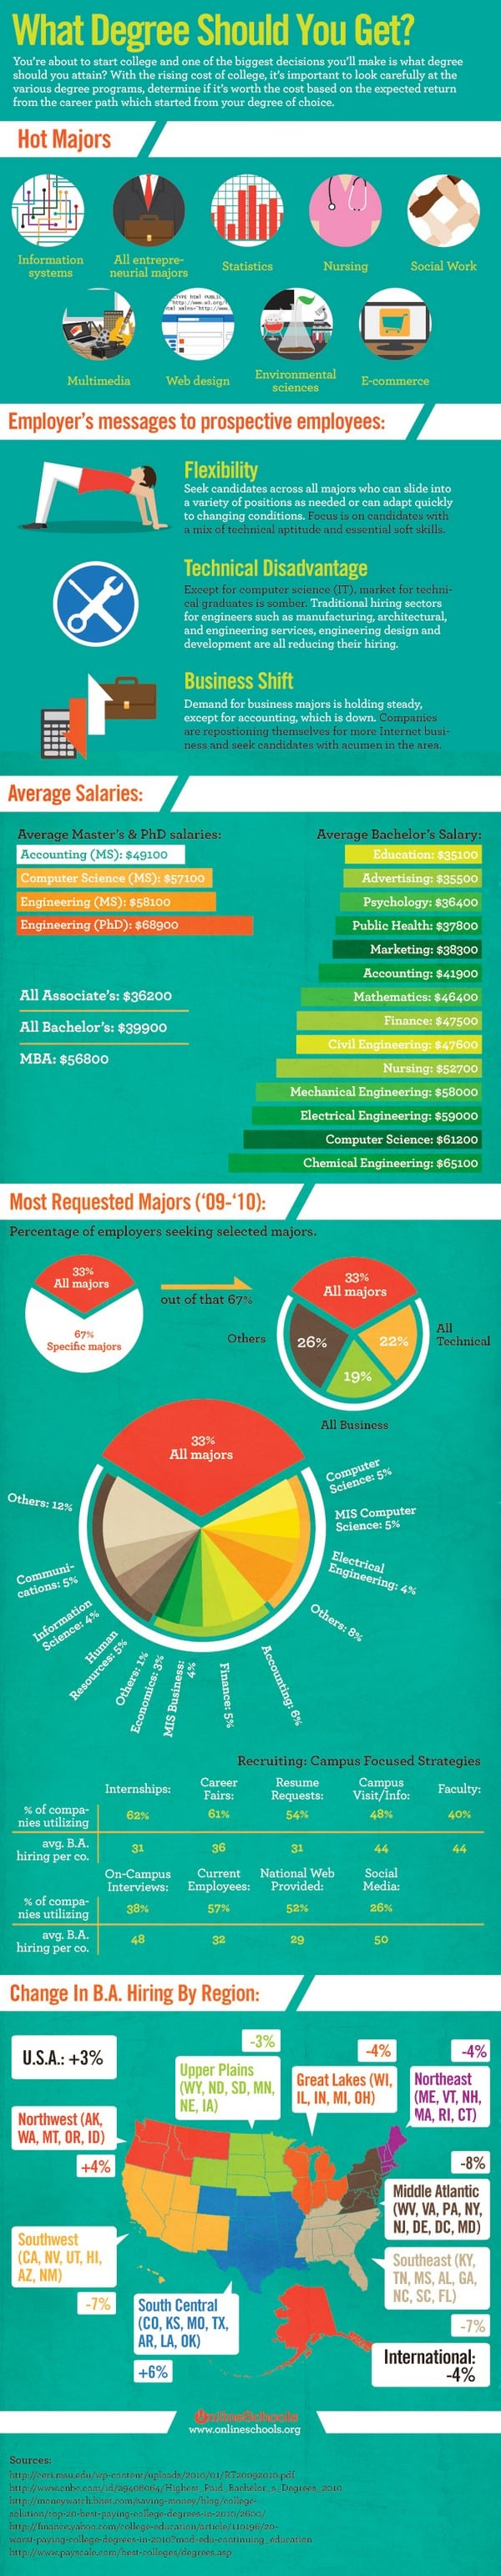 What Degree Should You Get Infographic